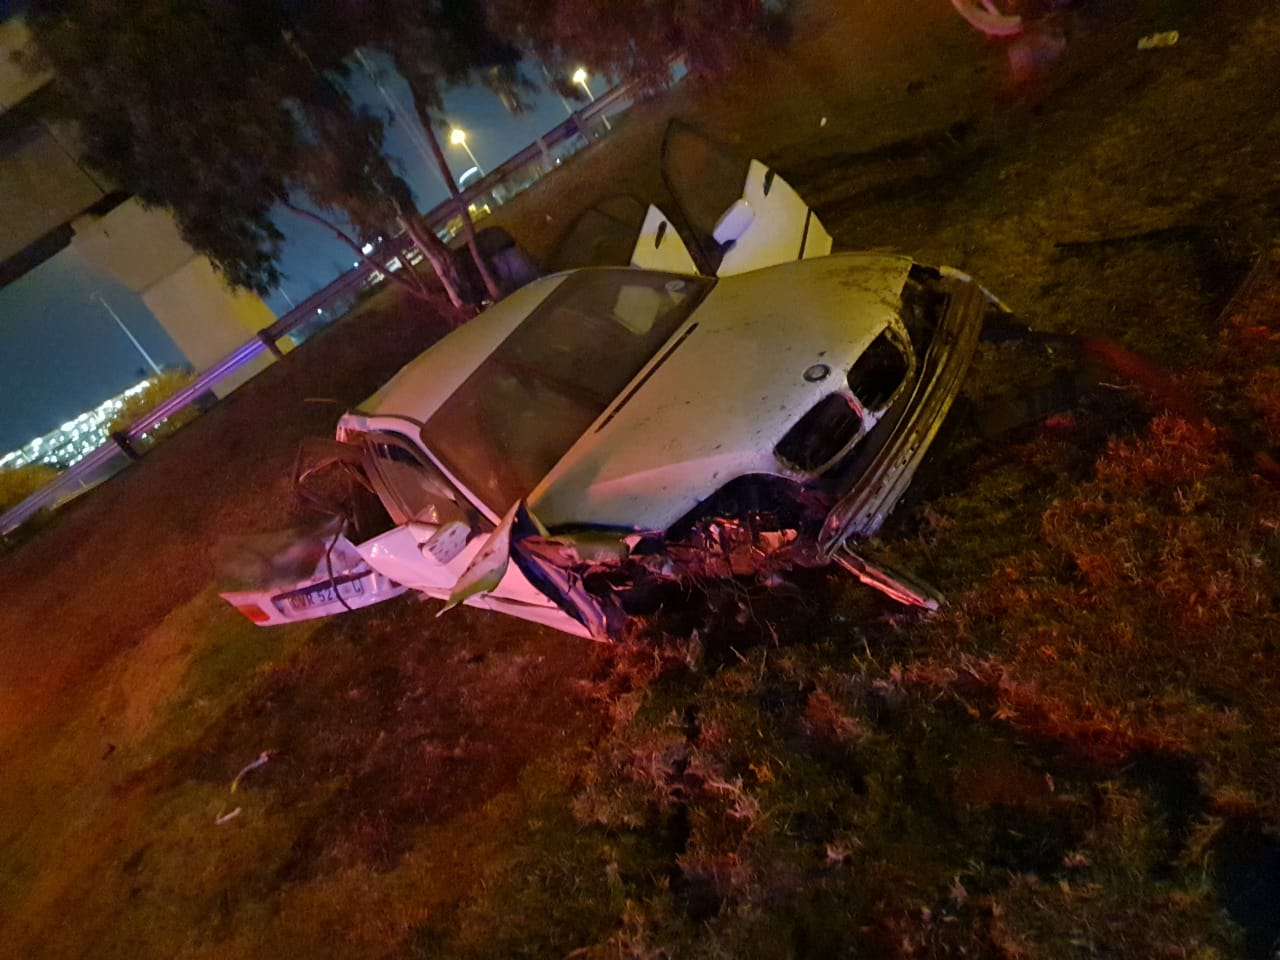 Injuries sustained in road crash in Kempton Park